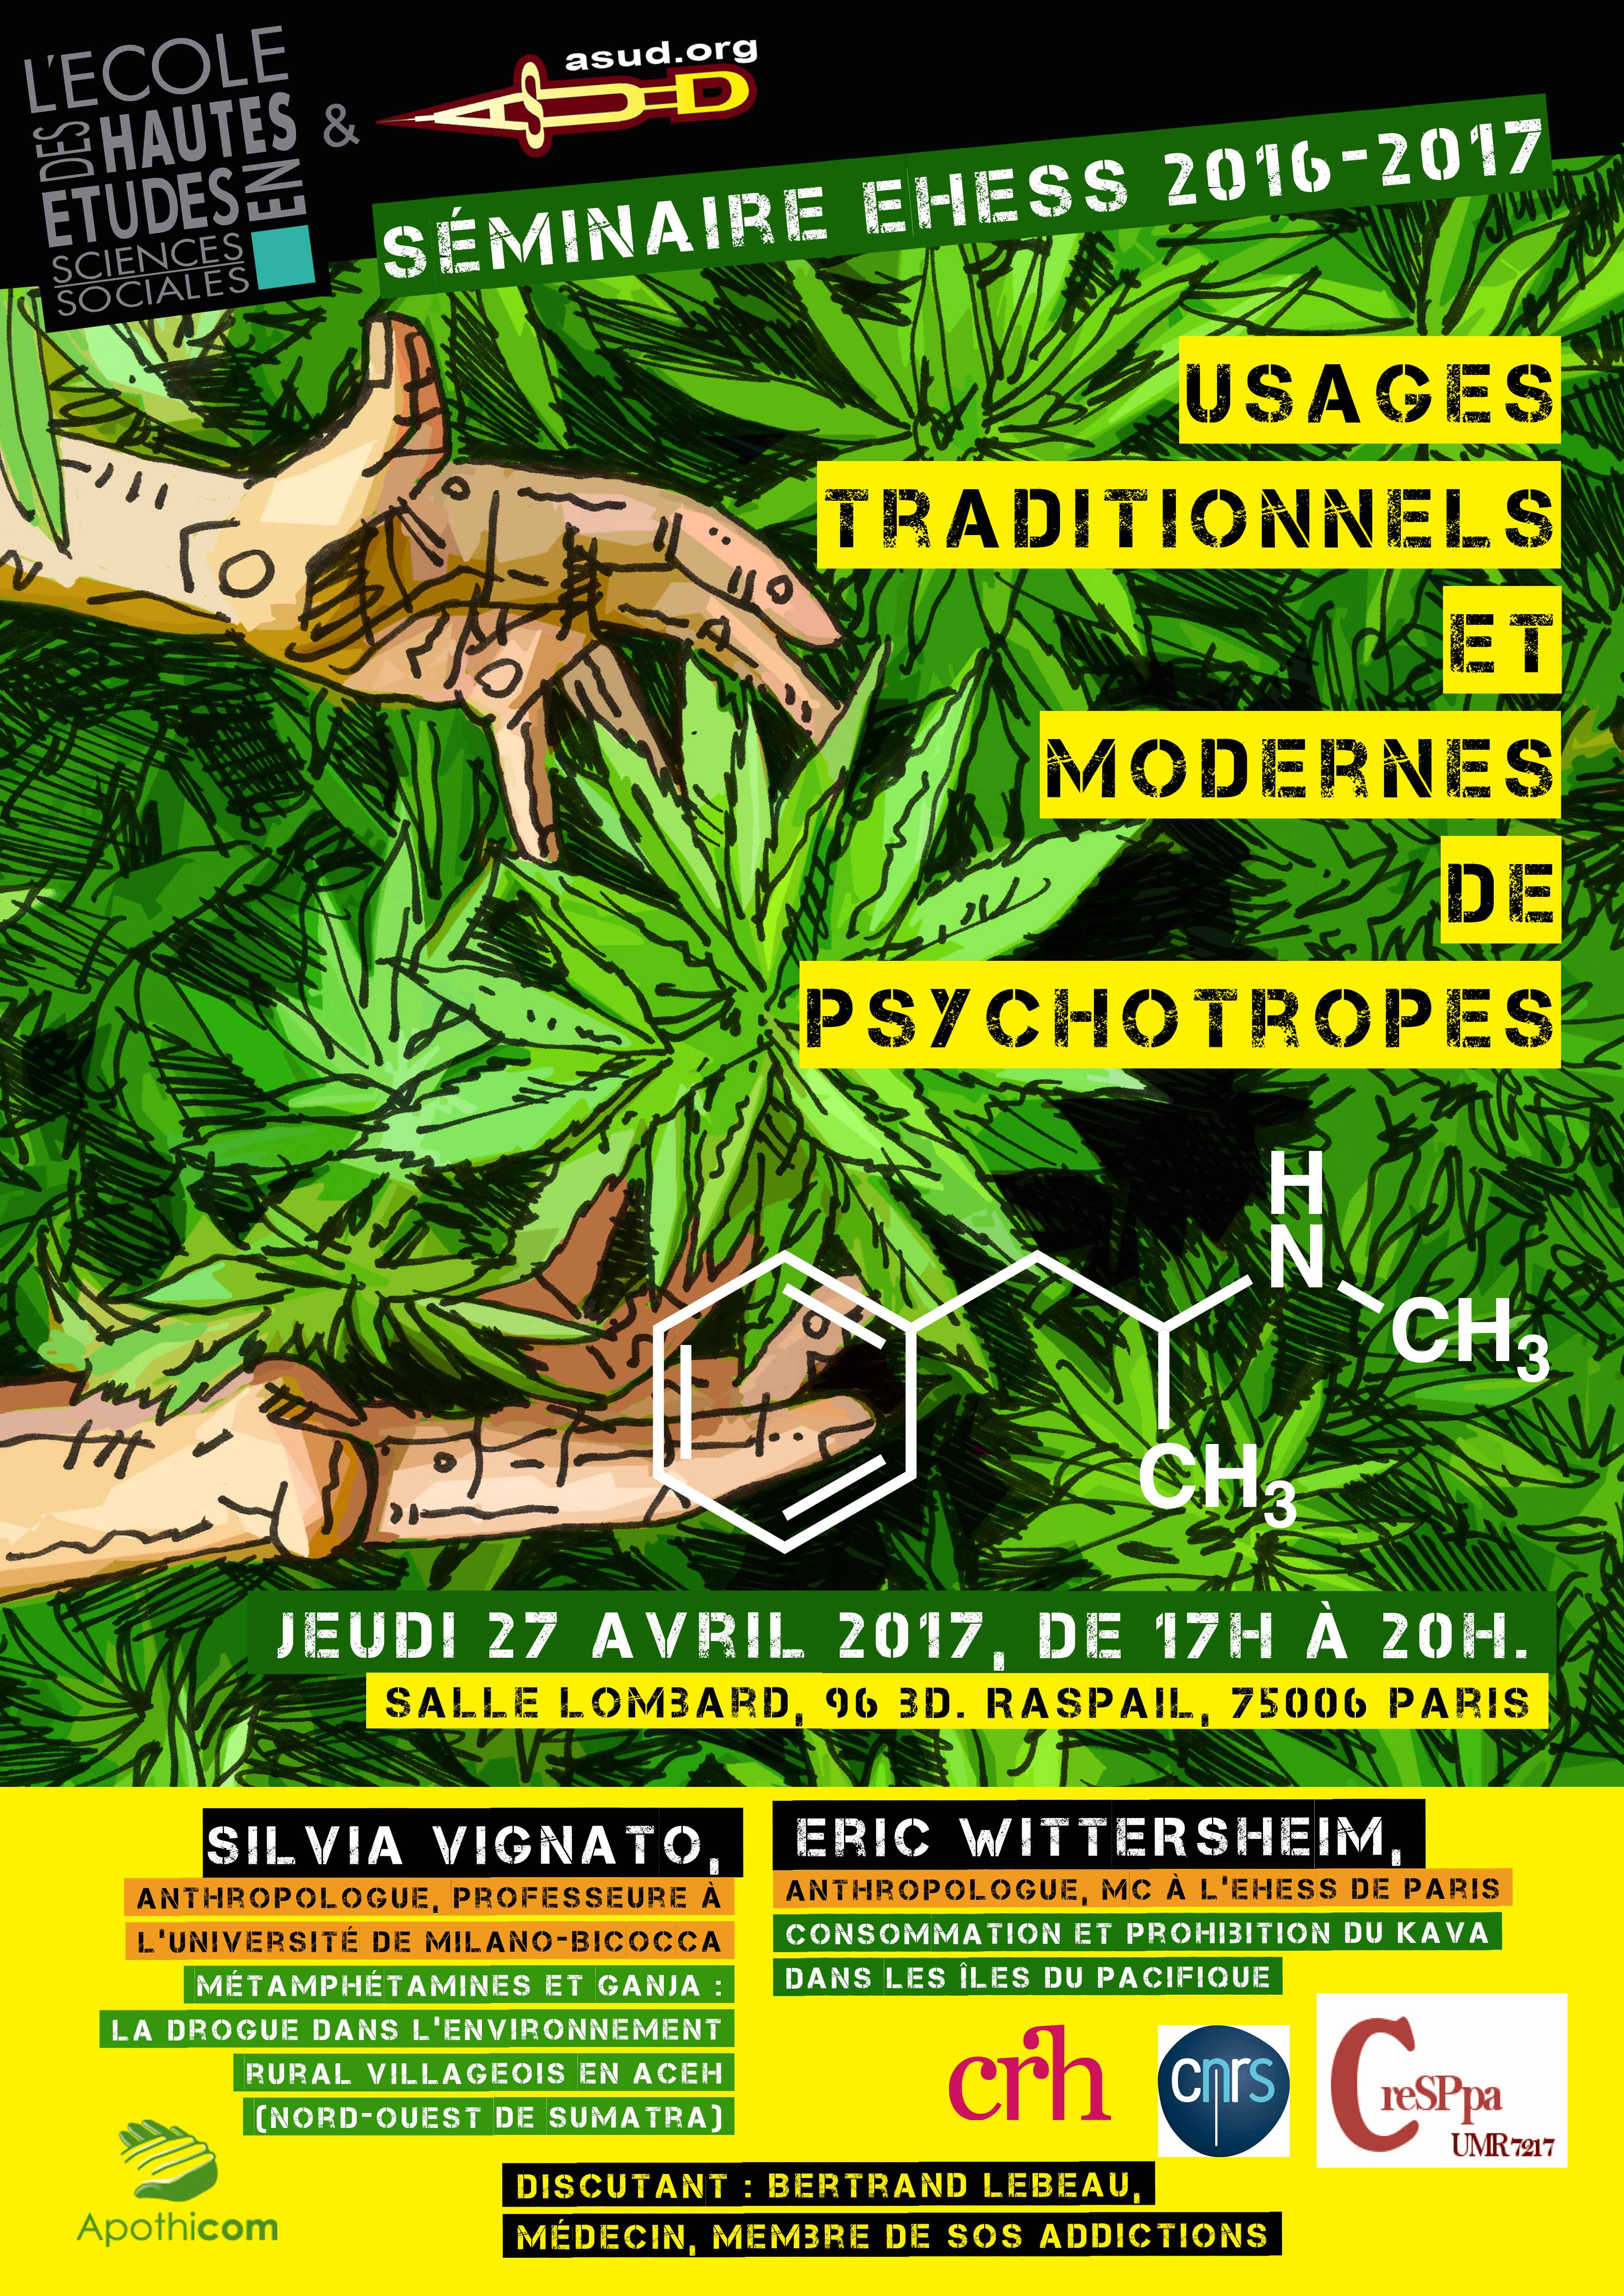 Usages traditionnels et modernes de psychotropes